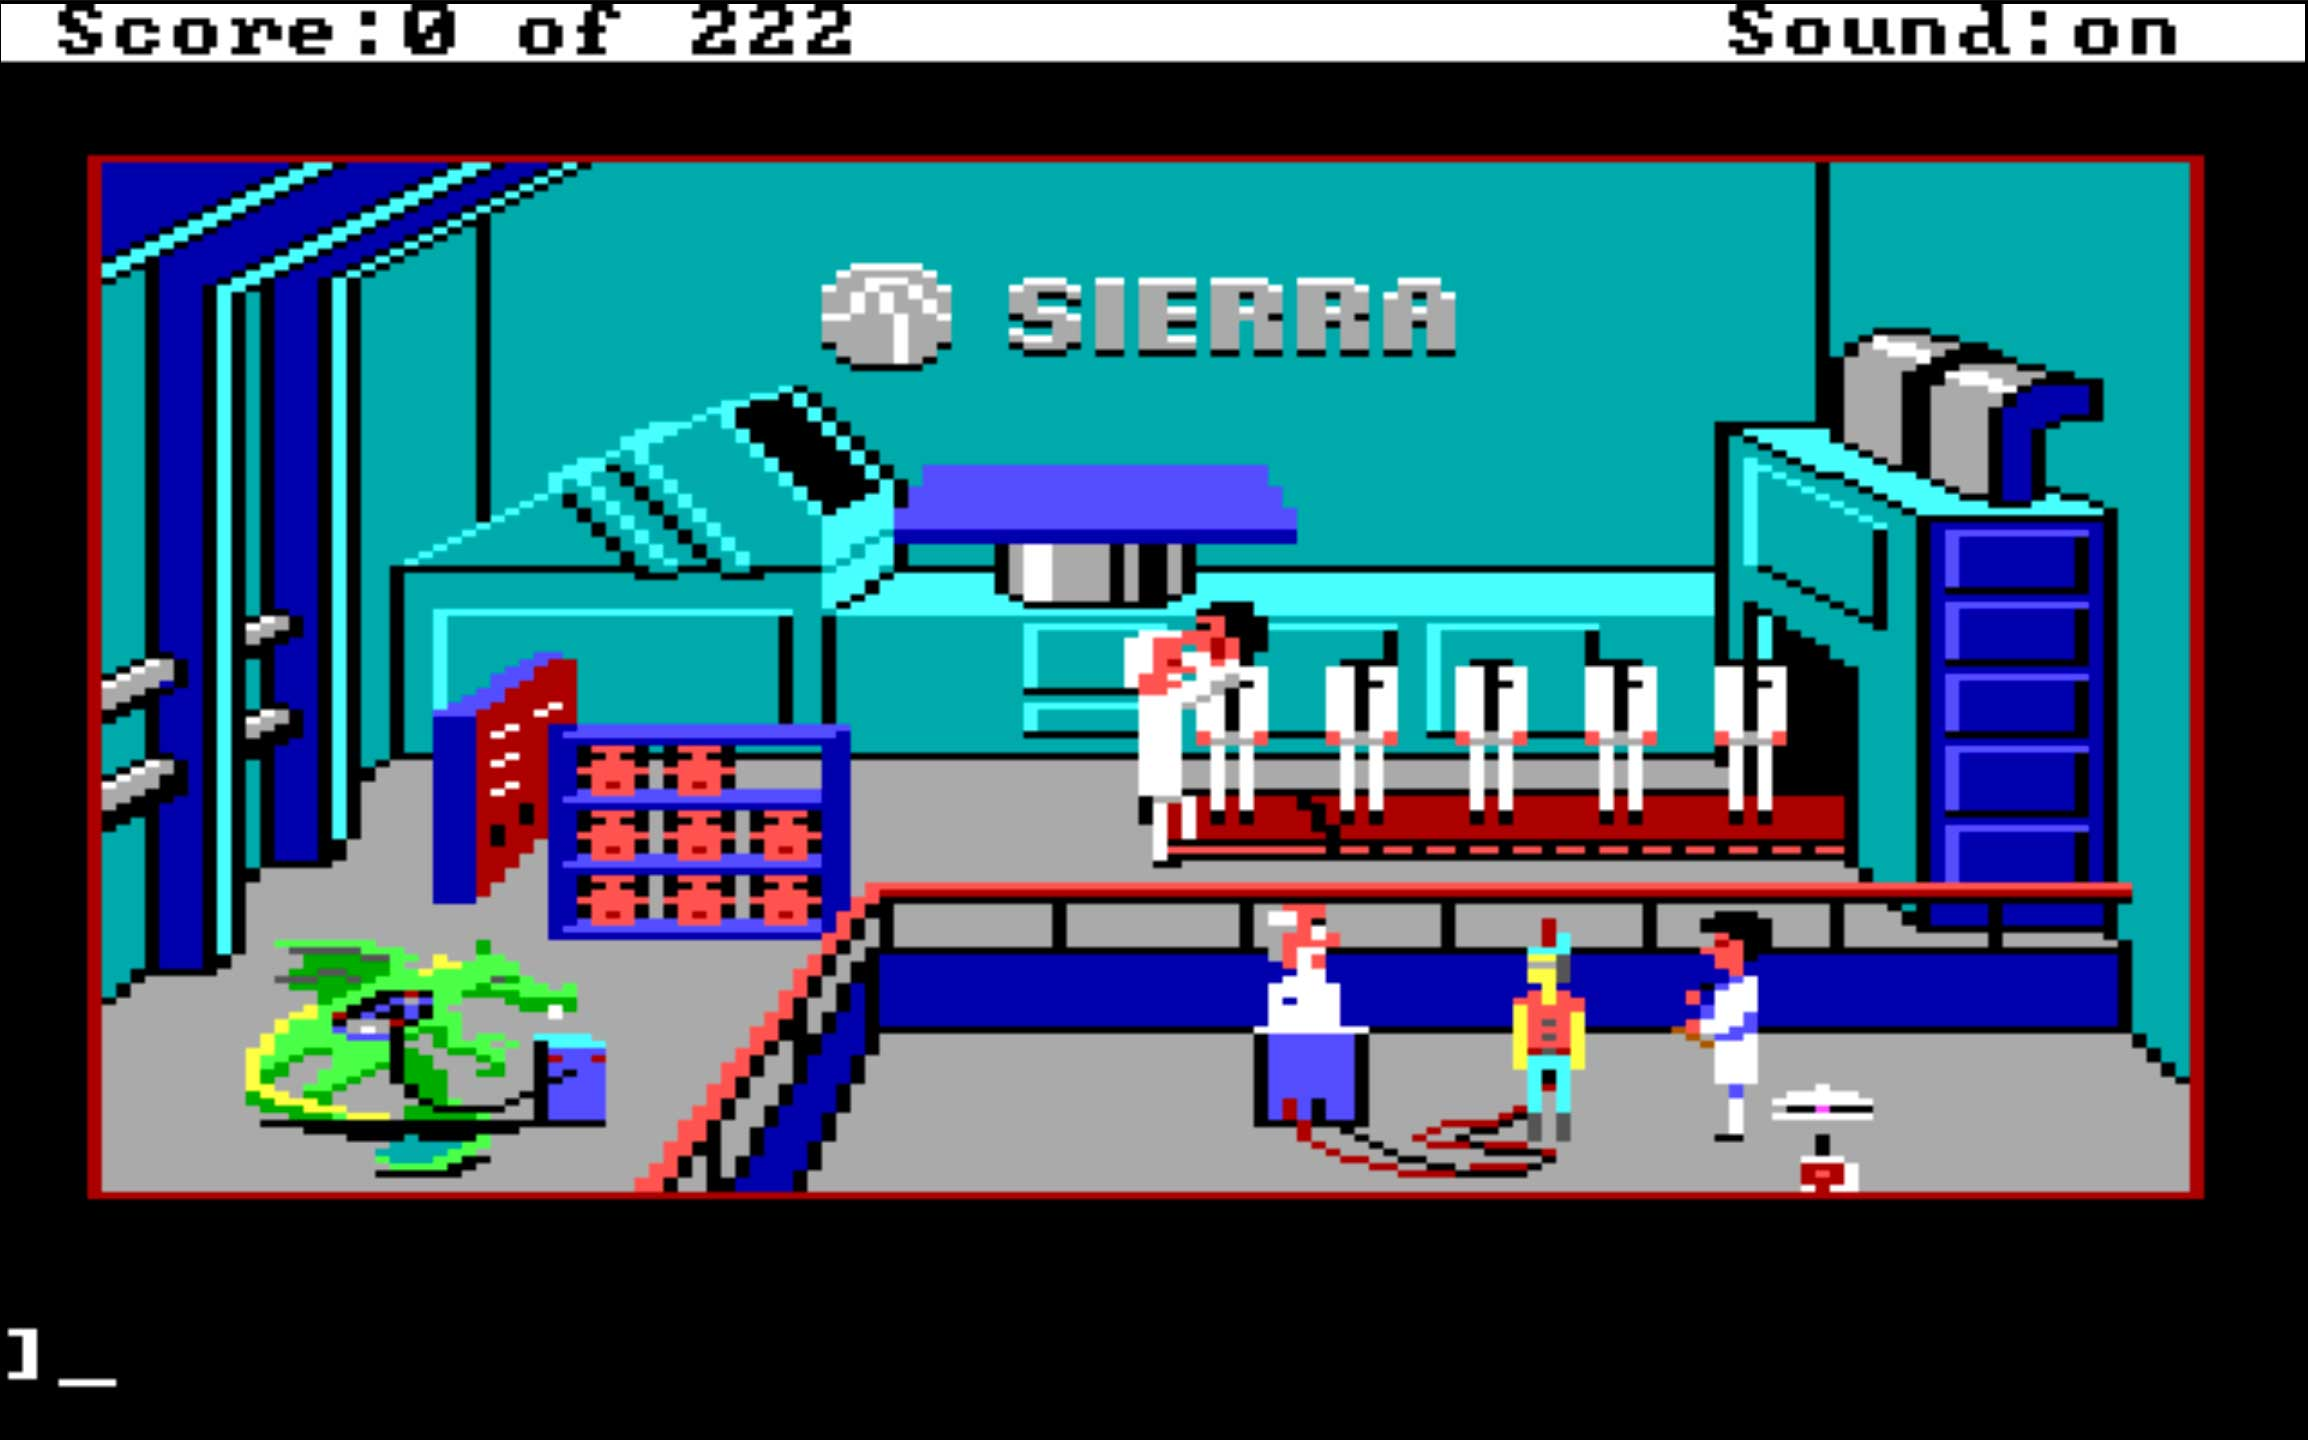 "<a href=""https://archive.org/details/msdos_Leisure_Suit_Larry_1_-_Land_of_the_Lounge_Lizards_1987"" target=""_blank""><strong>Leisure Suit Larry 1 - Land of the Lounge Lizards (1987)</strong> </a>                                                                      Tame by today's standards, this 8-bit, adult-oriented title was the Grand Theft Auto of its time, following the exploits of Larry Laffer as he strolls the city of Lost Wages, looking for love."